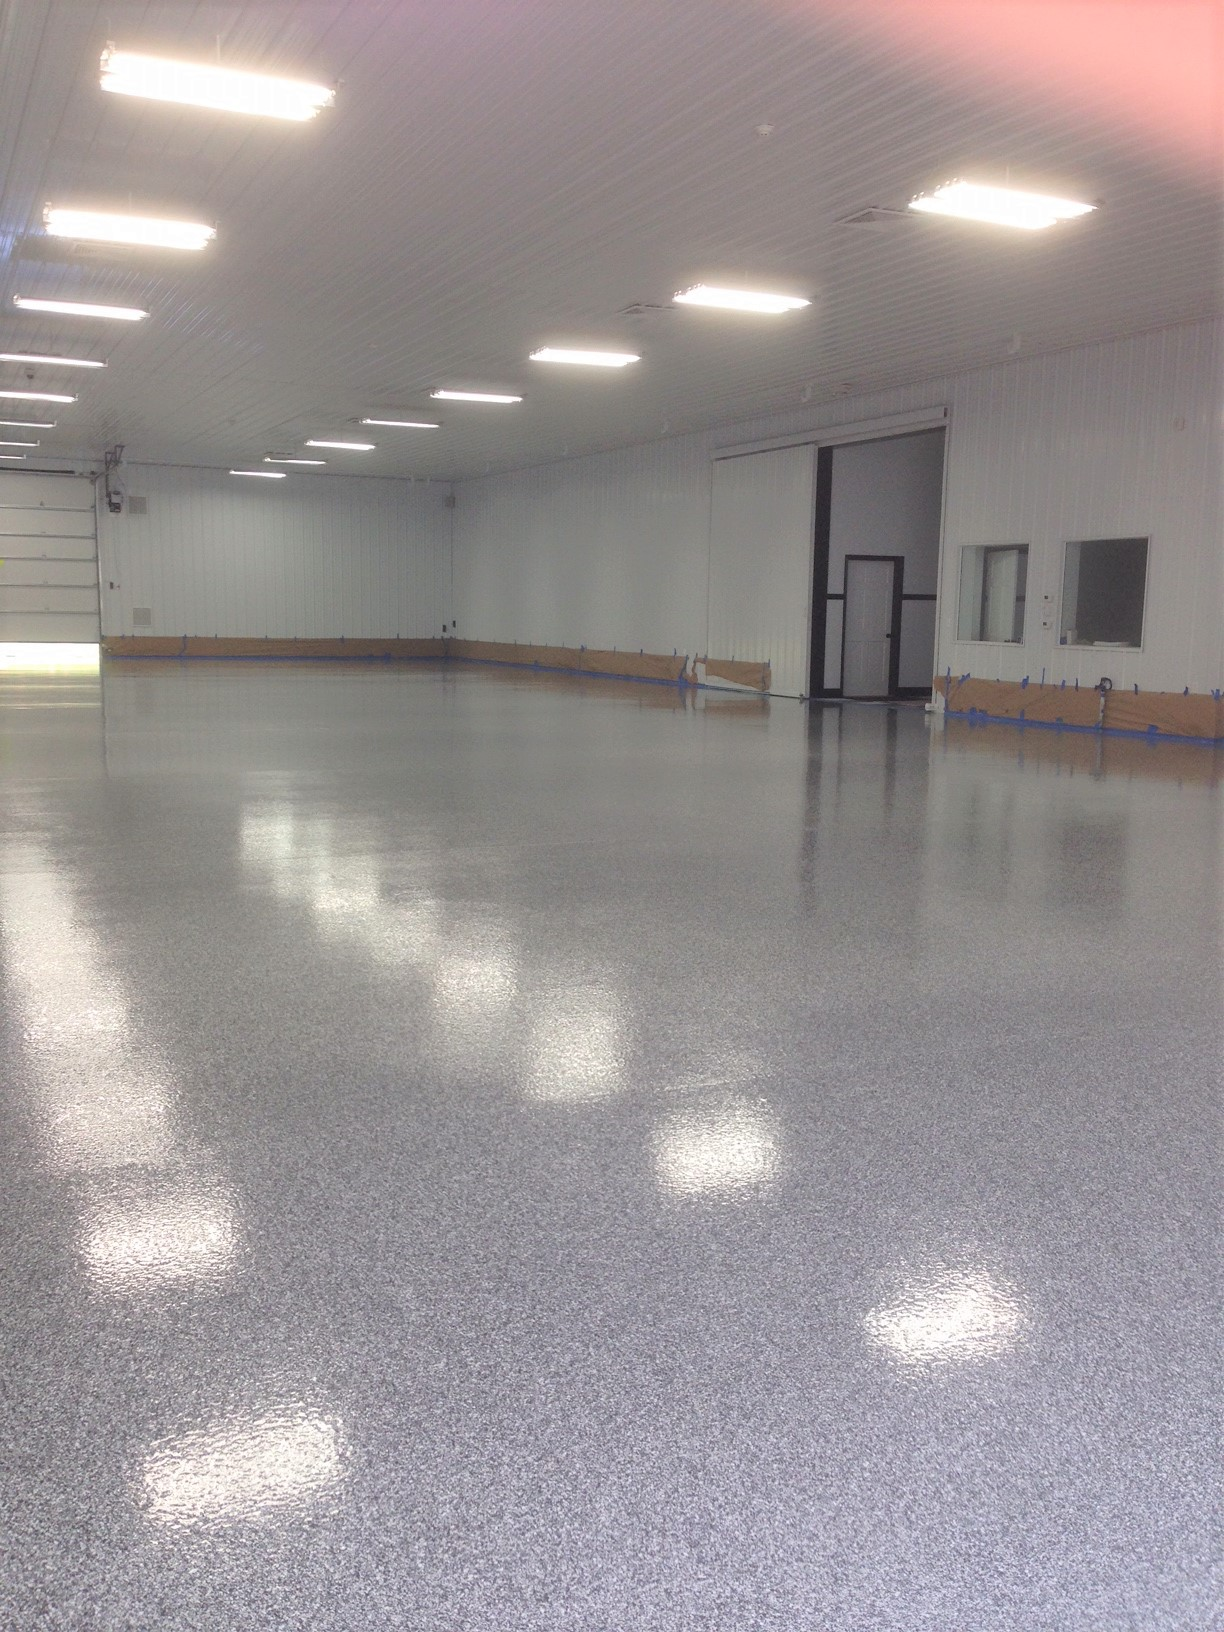 Garage Floor Coating of New Jersey image 5